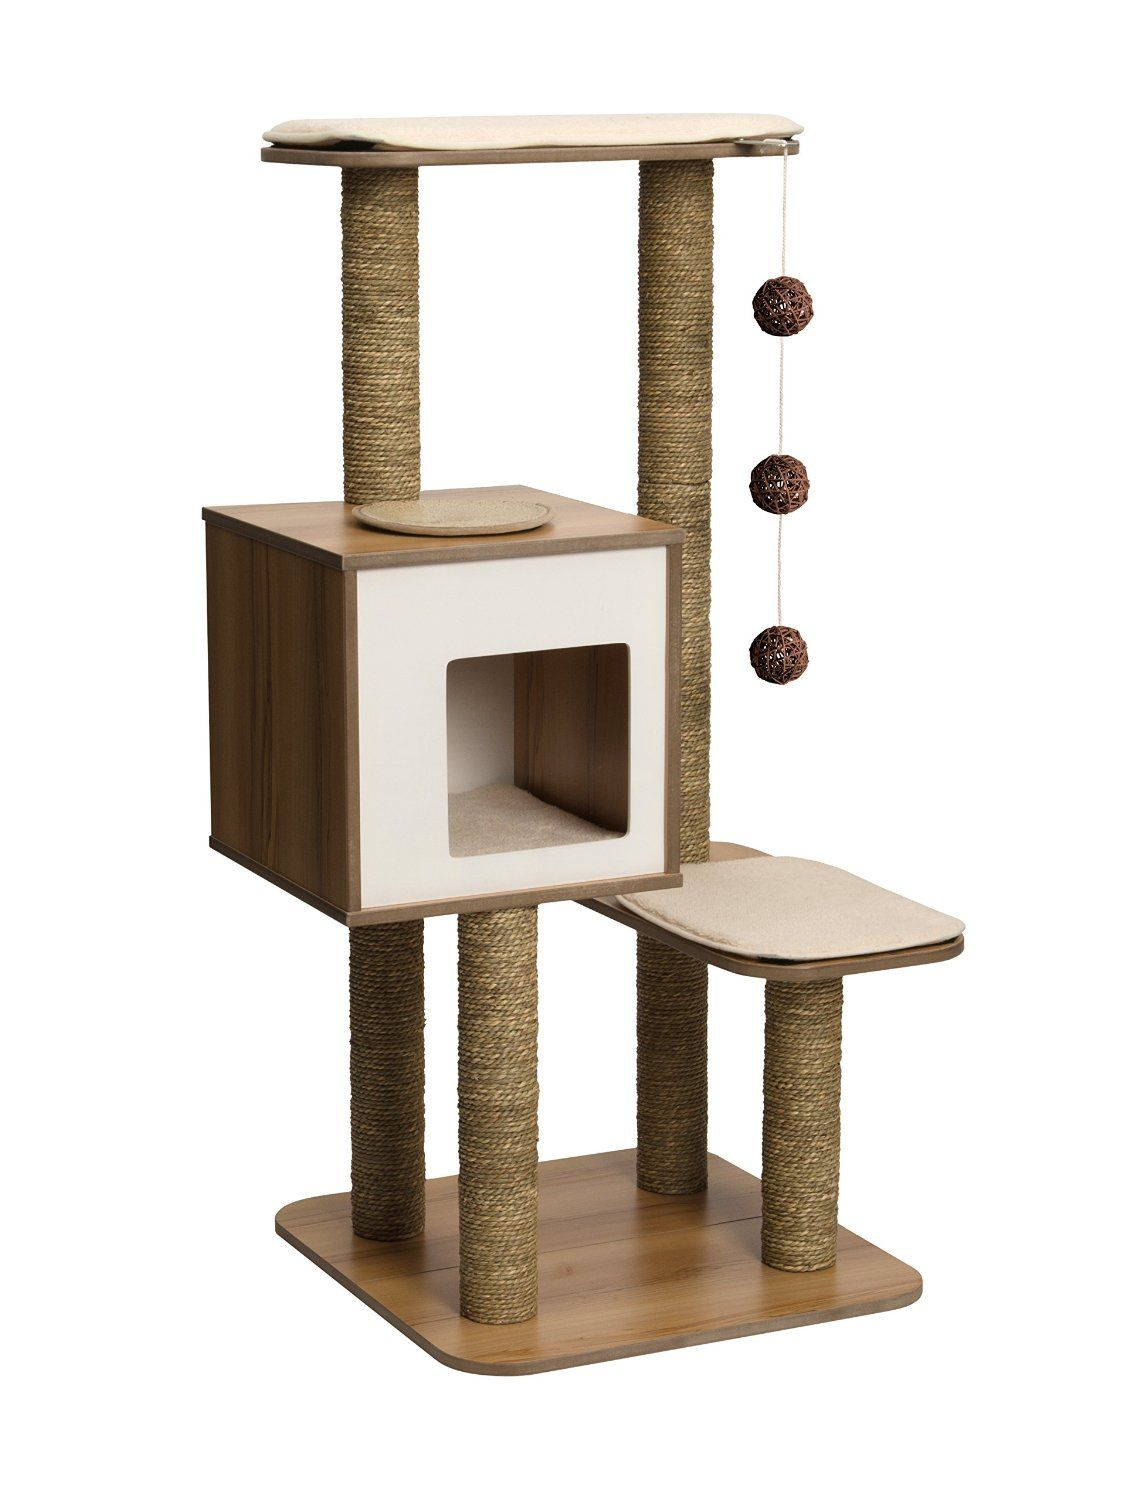 window mounted cat bed as seen on tv  cat tree condo and cat tree - modern cat treecondo